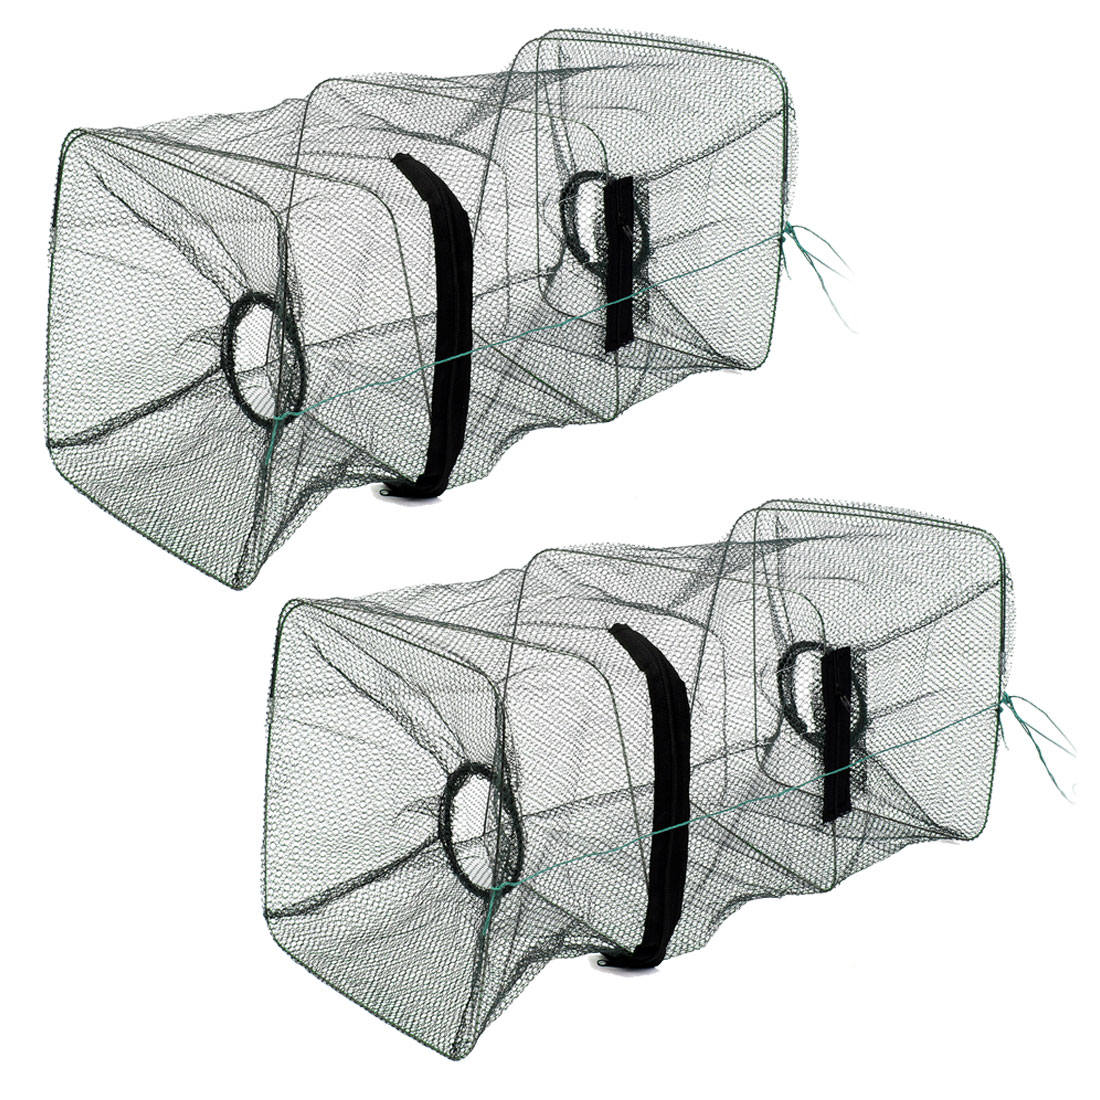 "2 Pcs 17.3"" Height Foldable Nylon Shrimp Crawfish Mesh Net Army Green"